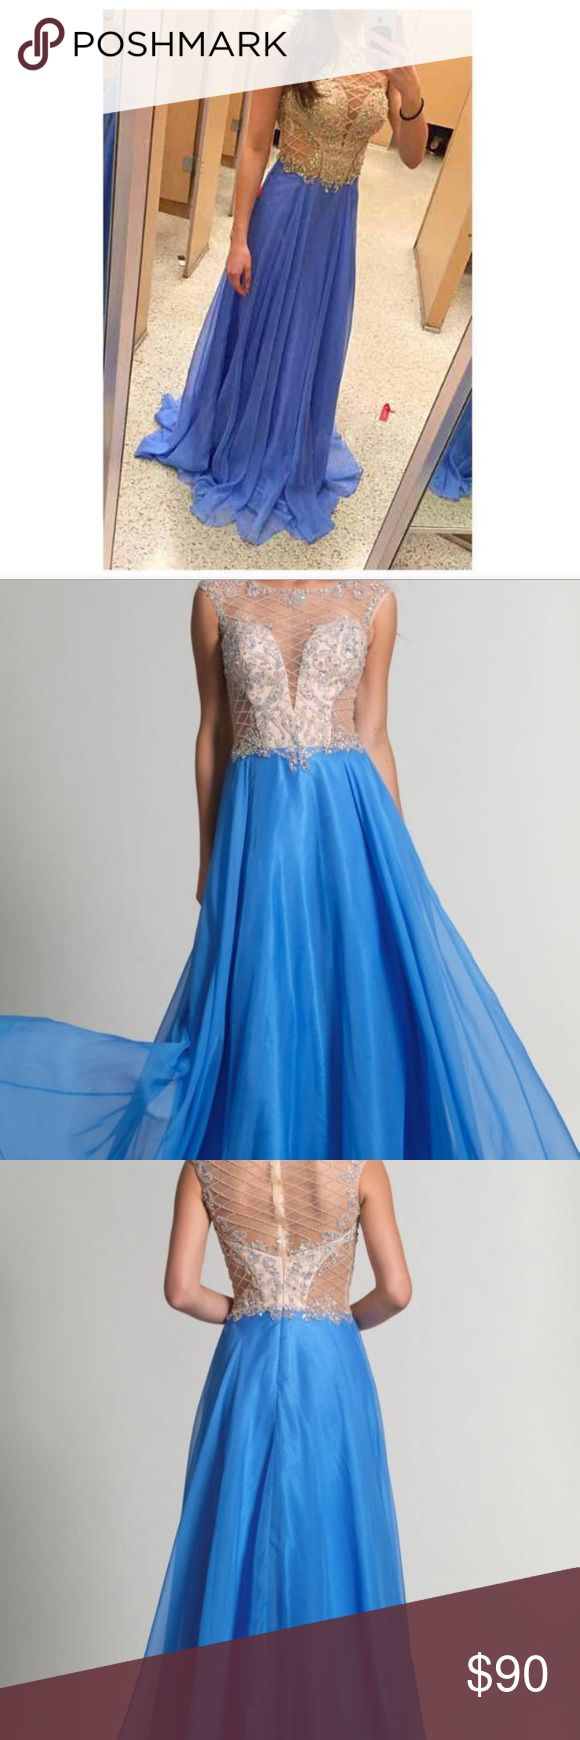 NWT prom dress// Bought it for m senior year prom but never wore it. NWT. There is a small stain pictured and a little dirty in one part but it's at the very bottom and you can't see it unless you look for it and it will come off. Price firm. From Dave and johnny online for $343 bought it for $440. Tagged as Sherri hill for views Sherri Hill Dresses Prom